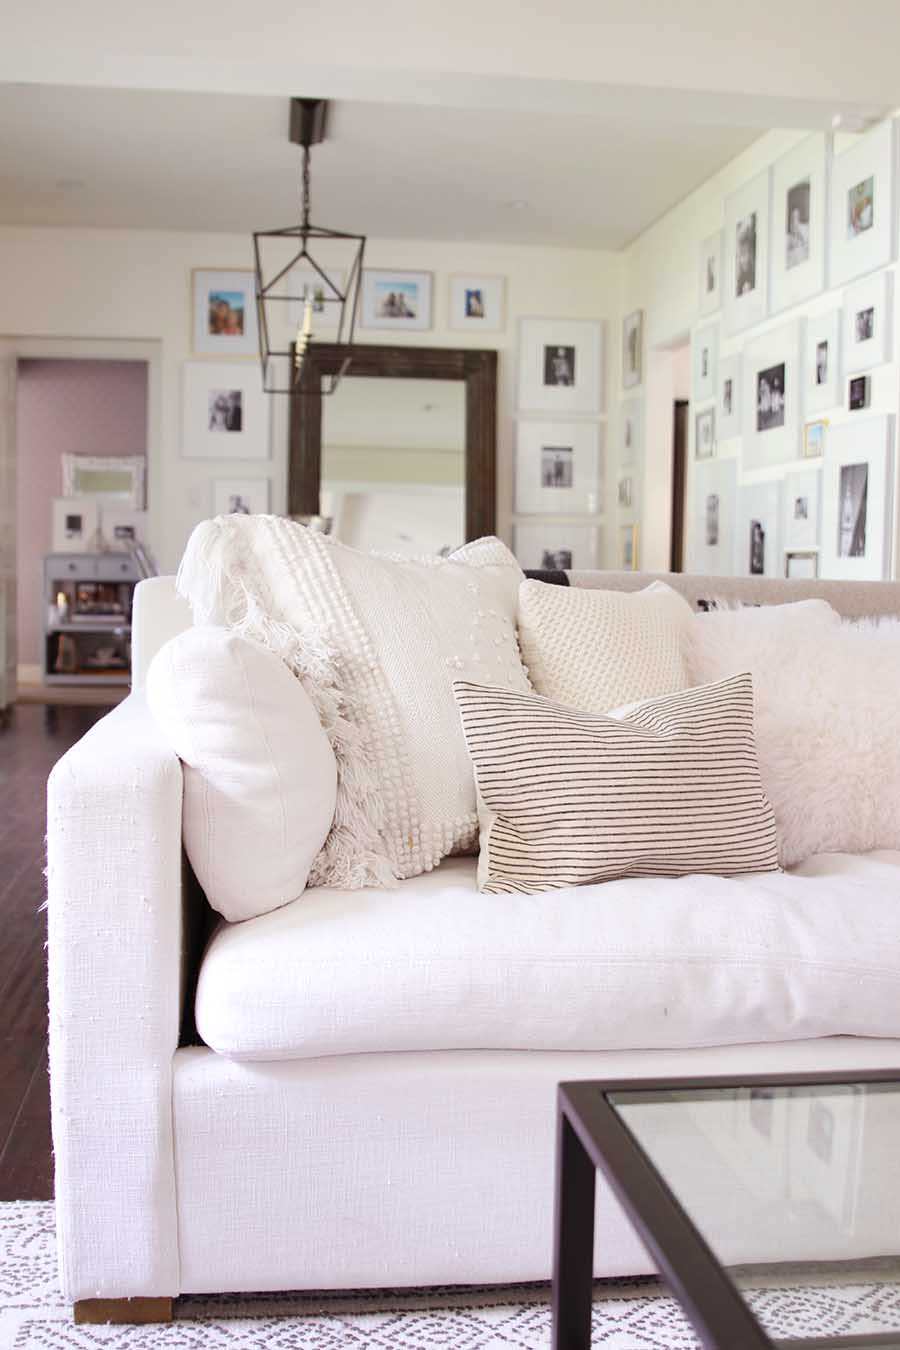 How To Add Cozy Vibes to Your Winter Home